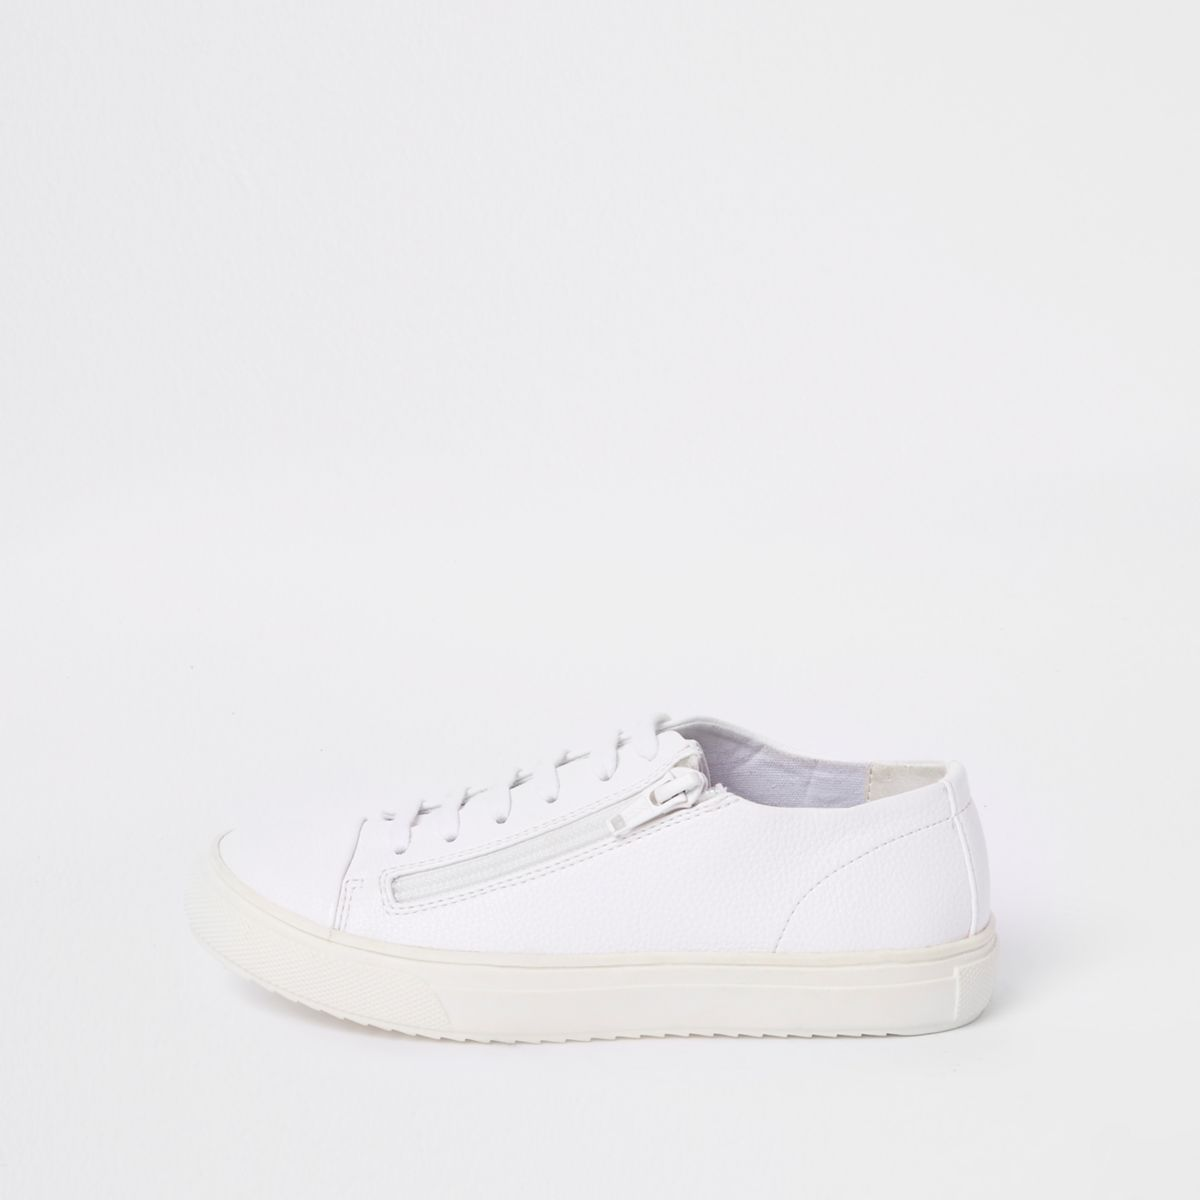 Boys white lace-up zip trainers